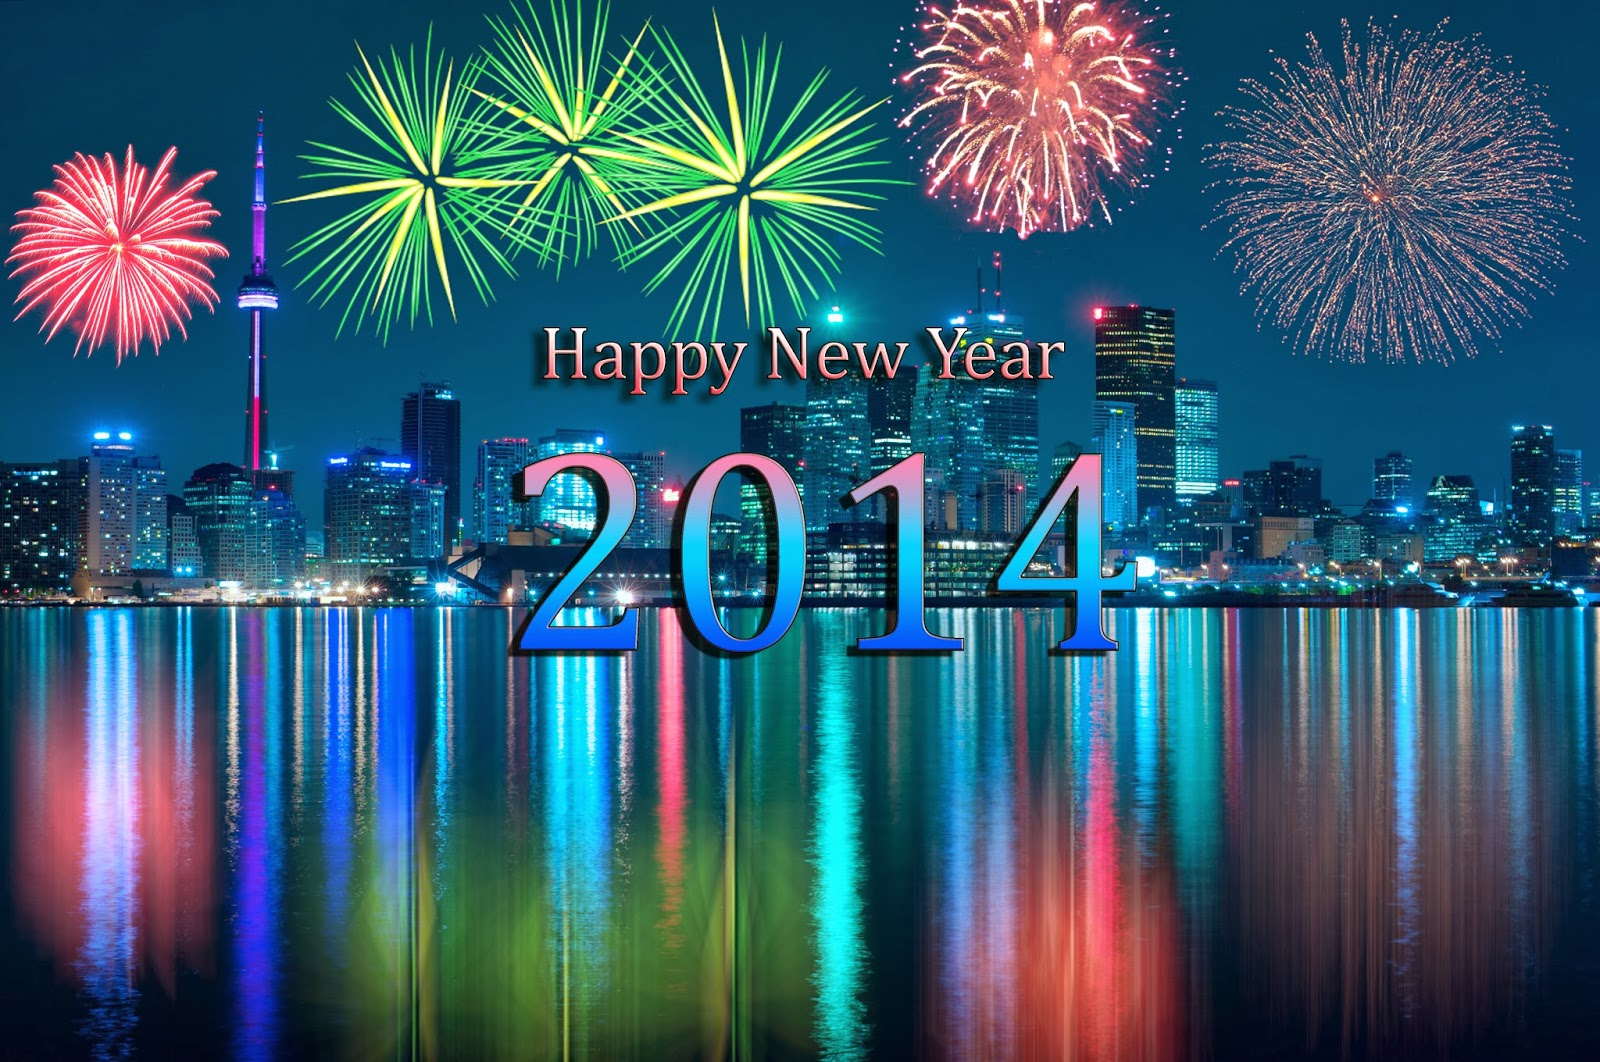 Happy New Year Wallpapers 2014. 1600 x 1062.Happy Nice New Year Messages Sms Jokes